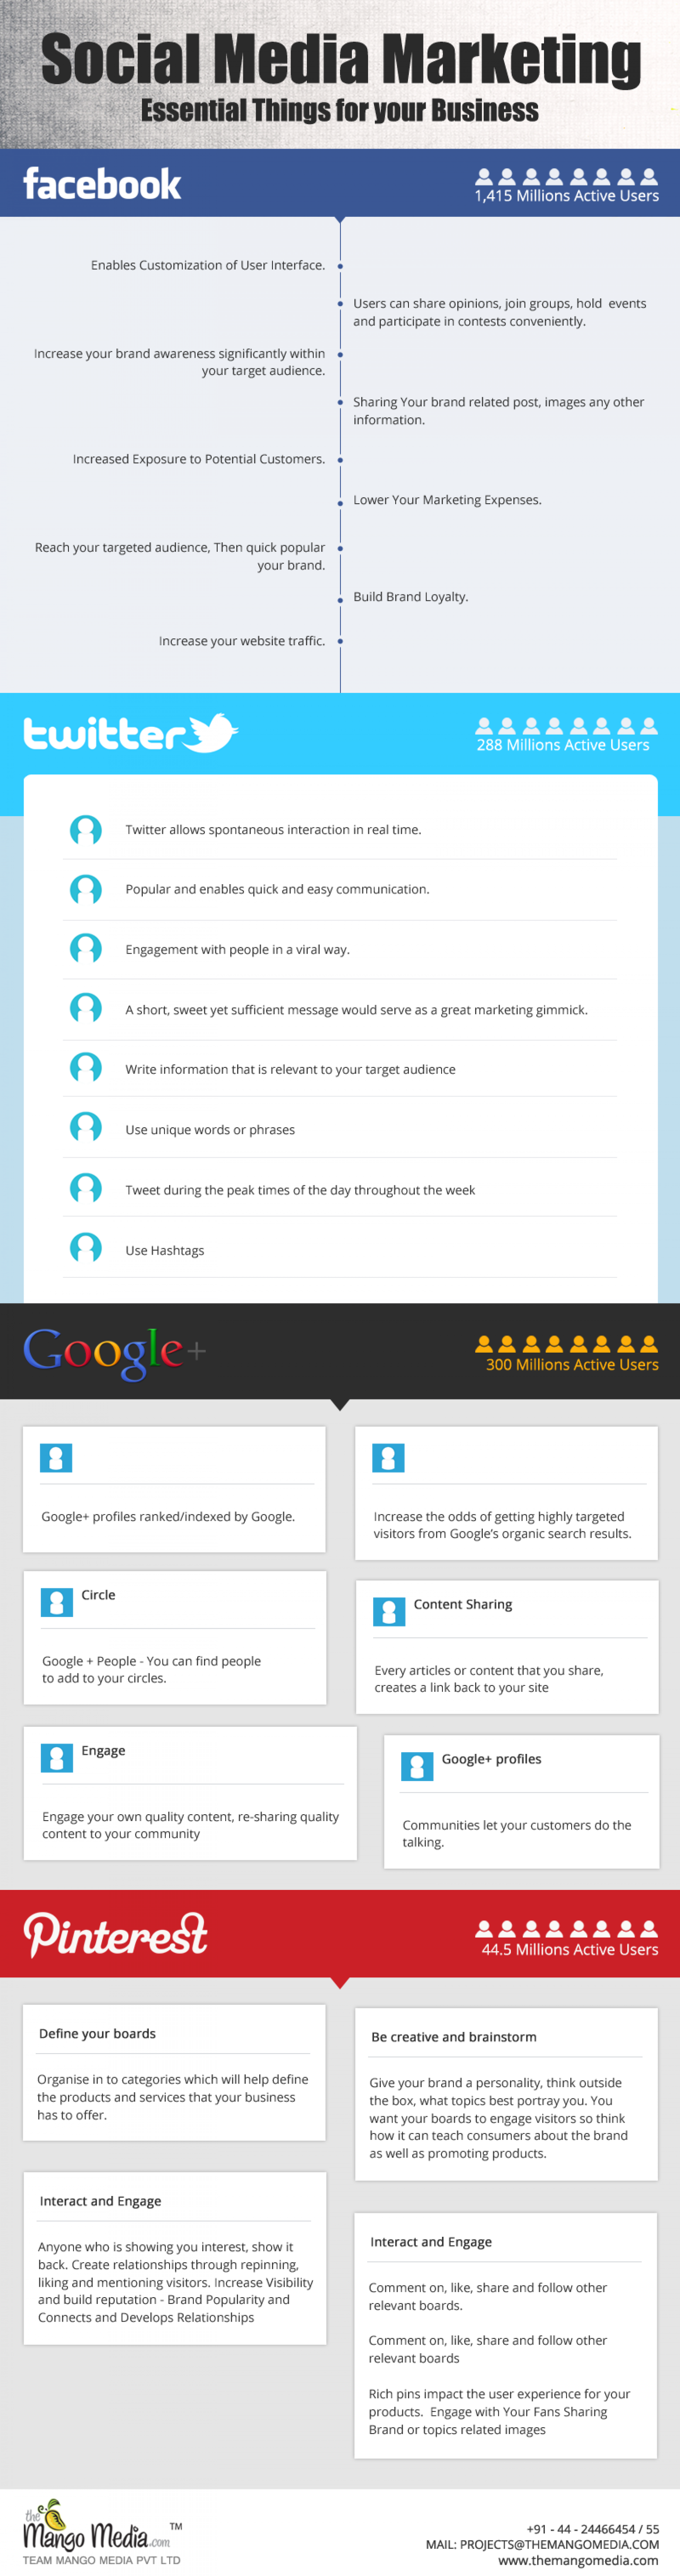 Social Medai Marketing: Essential Things for Business Infographic